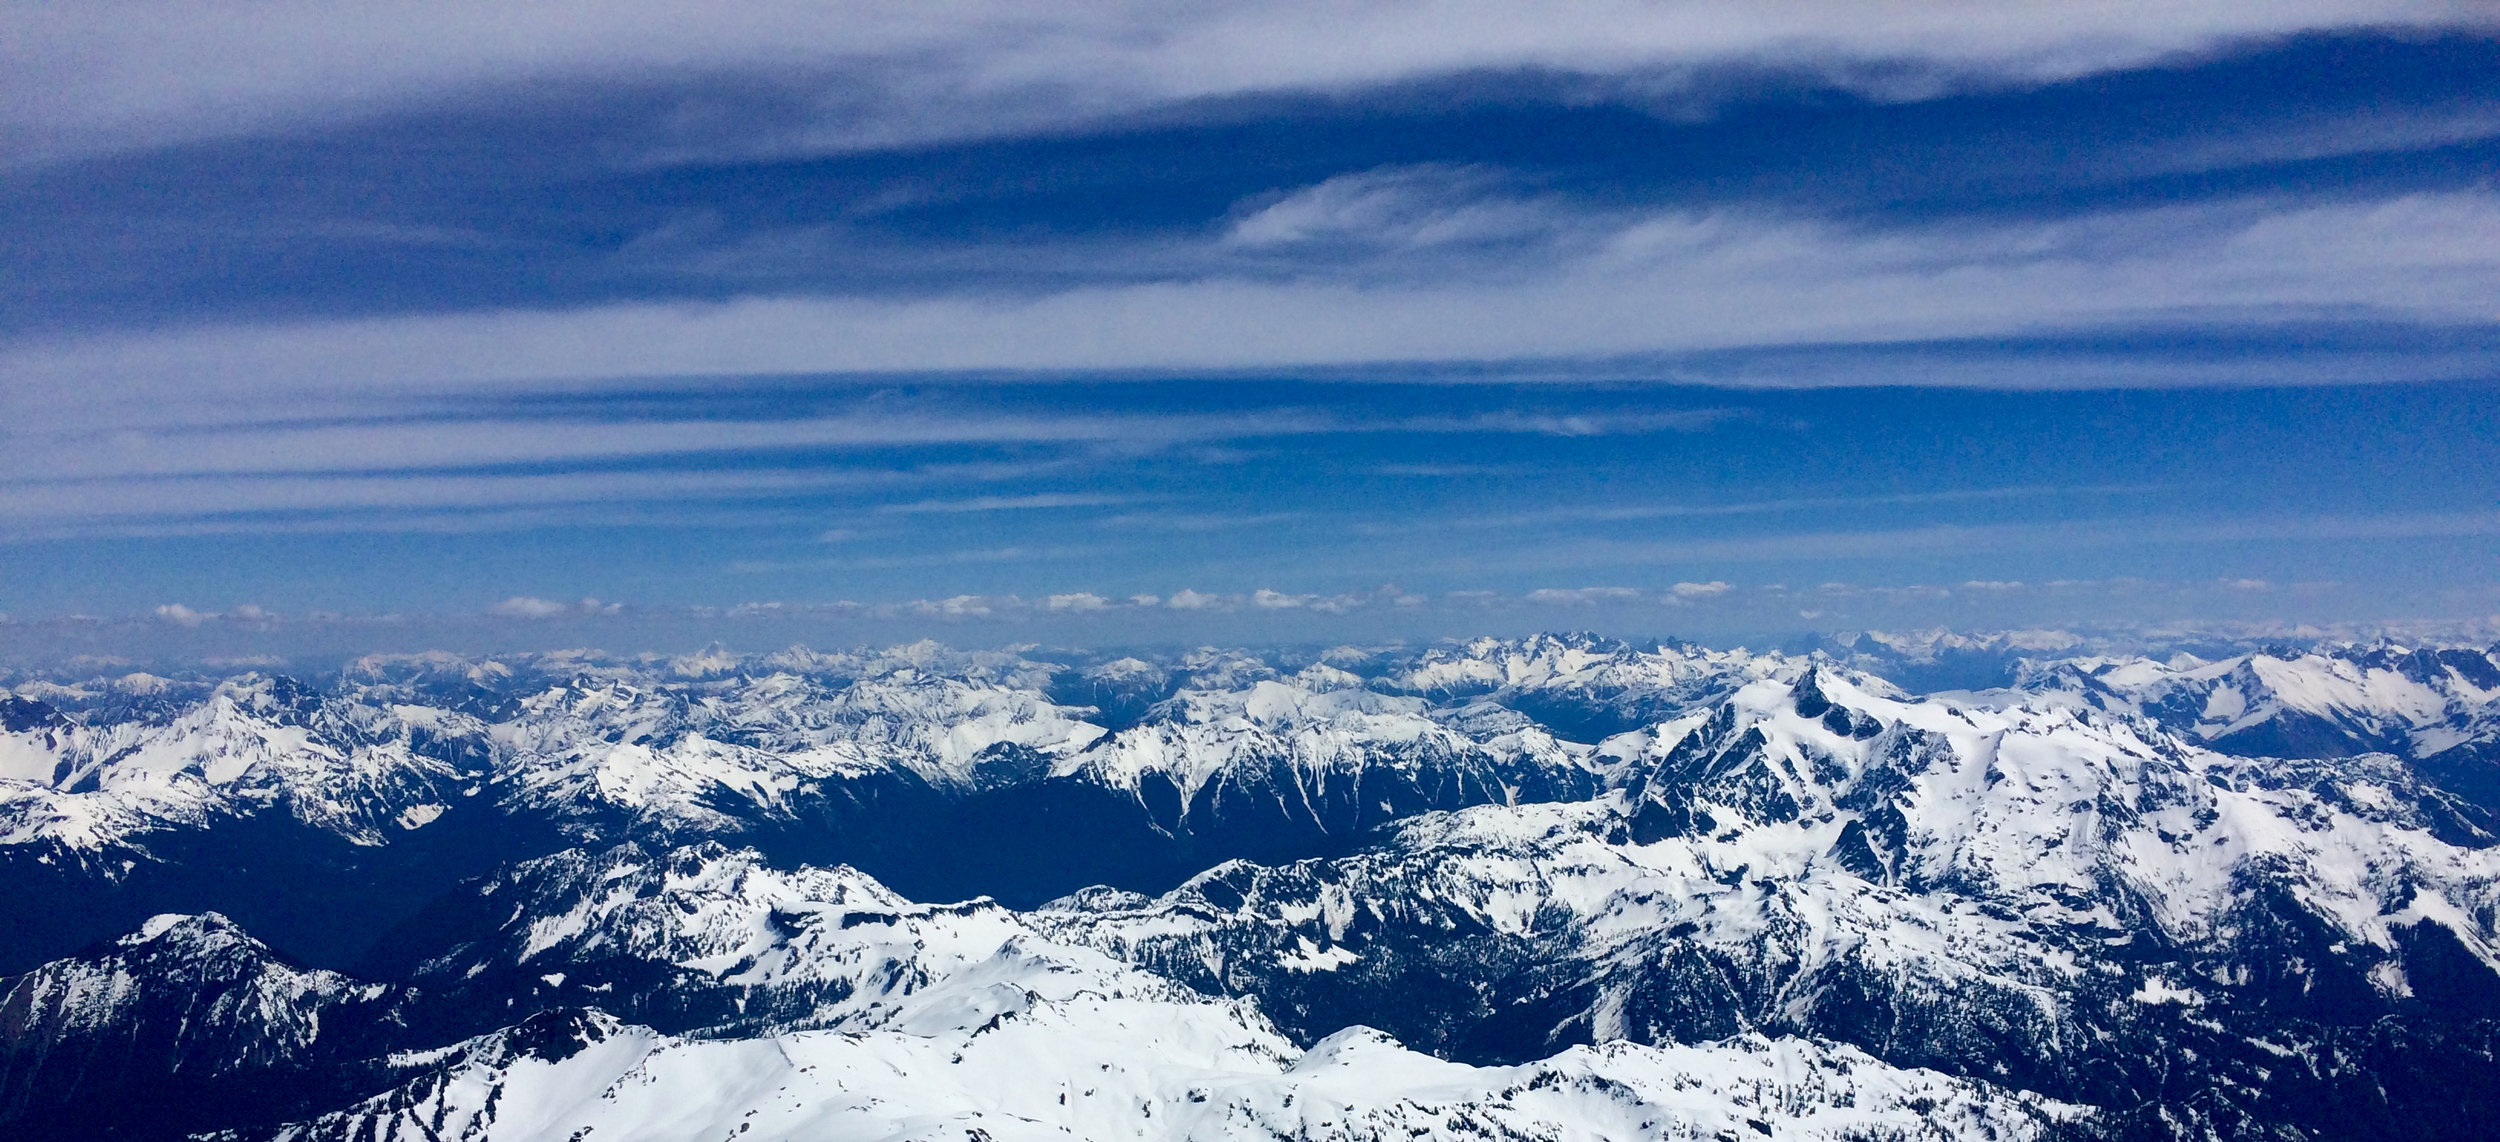 Another view from the peak - it really shows you how much higher Mt. Baker is than the surrounding mountains.